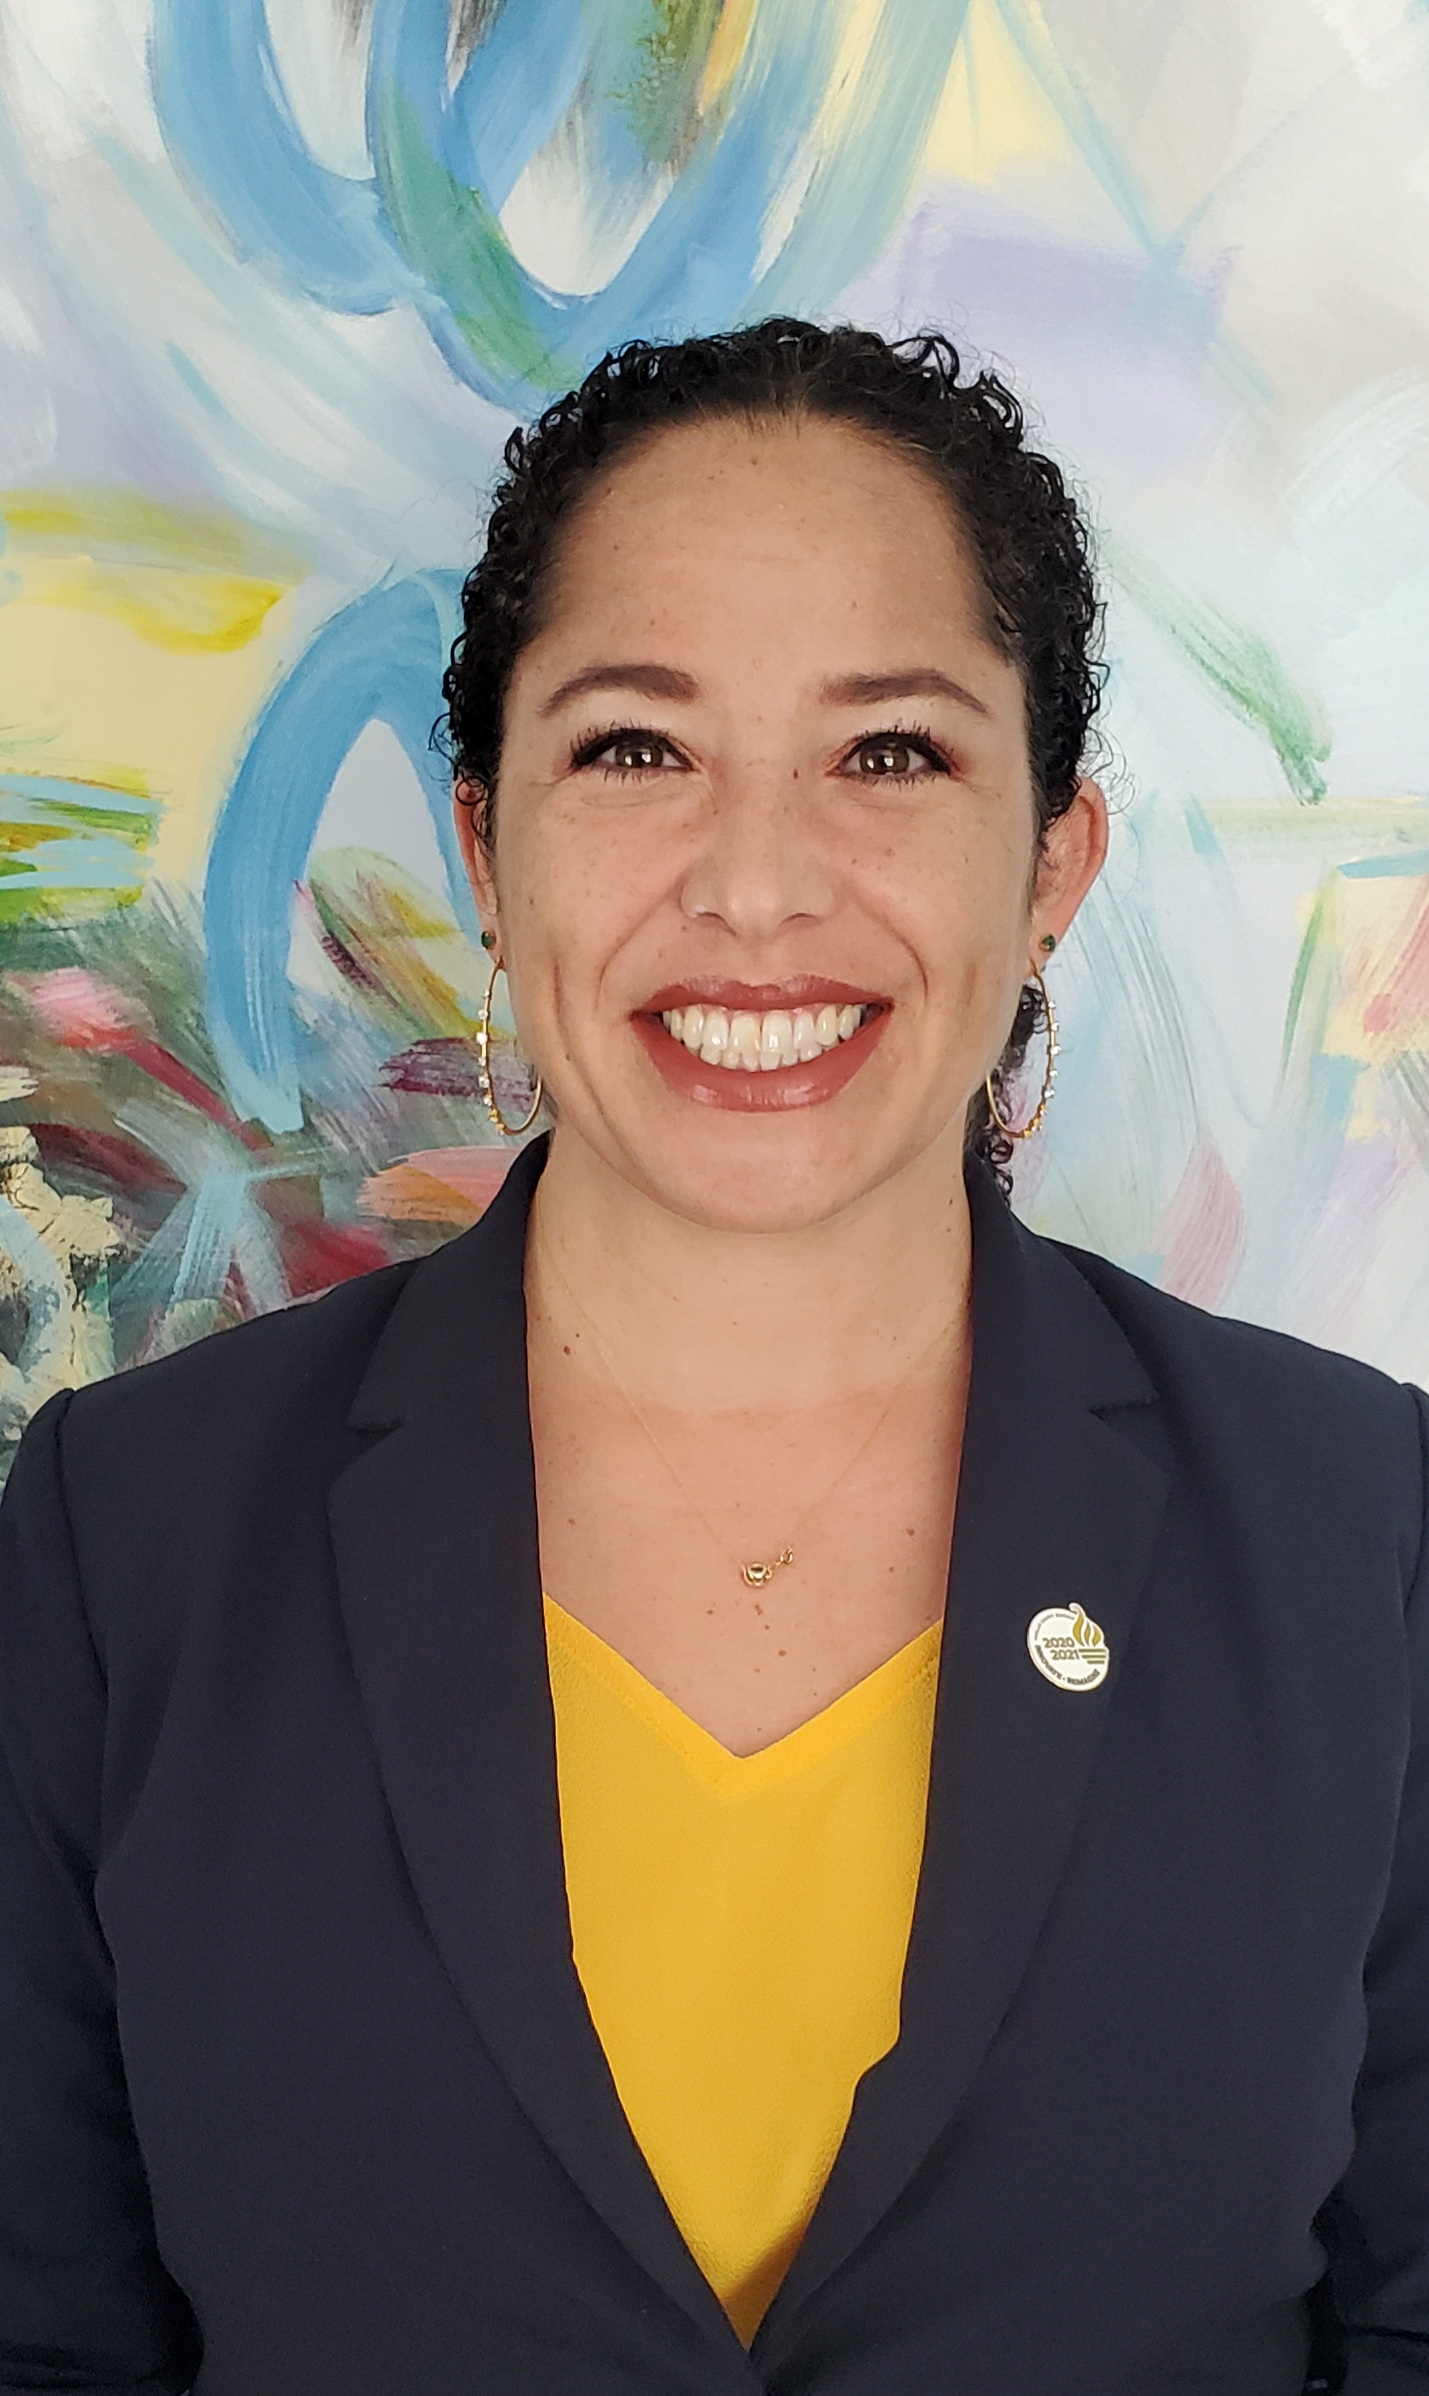 A photo of a woman smiling at a camera with a colorful background.